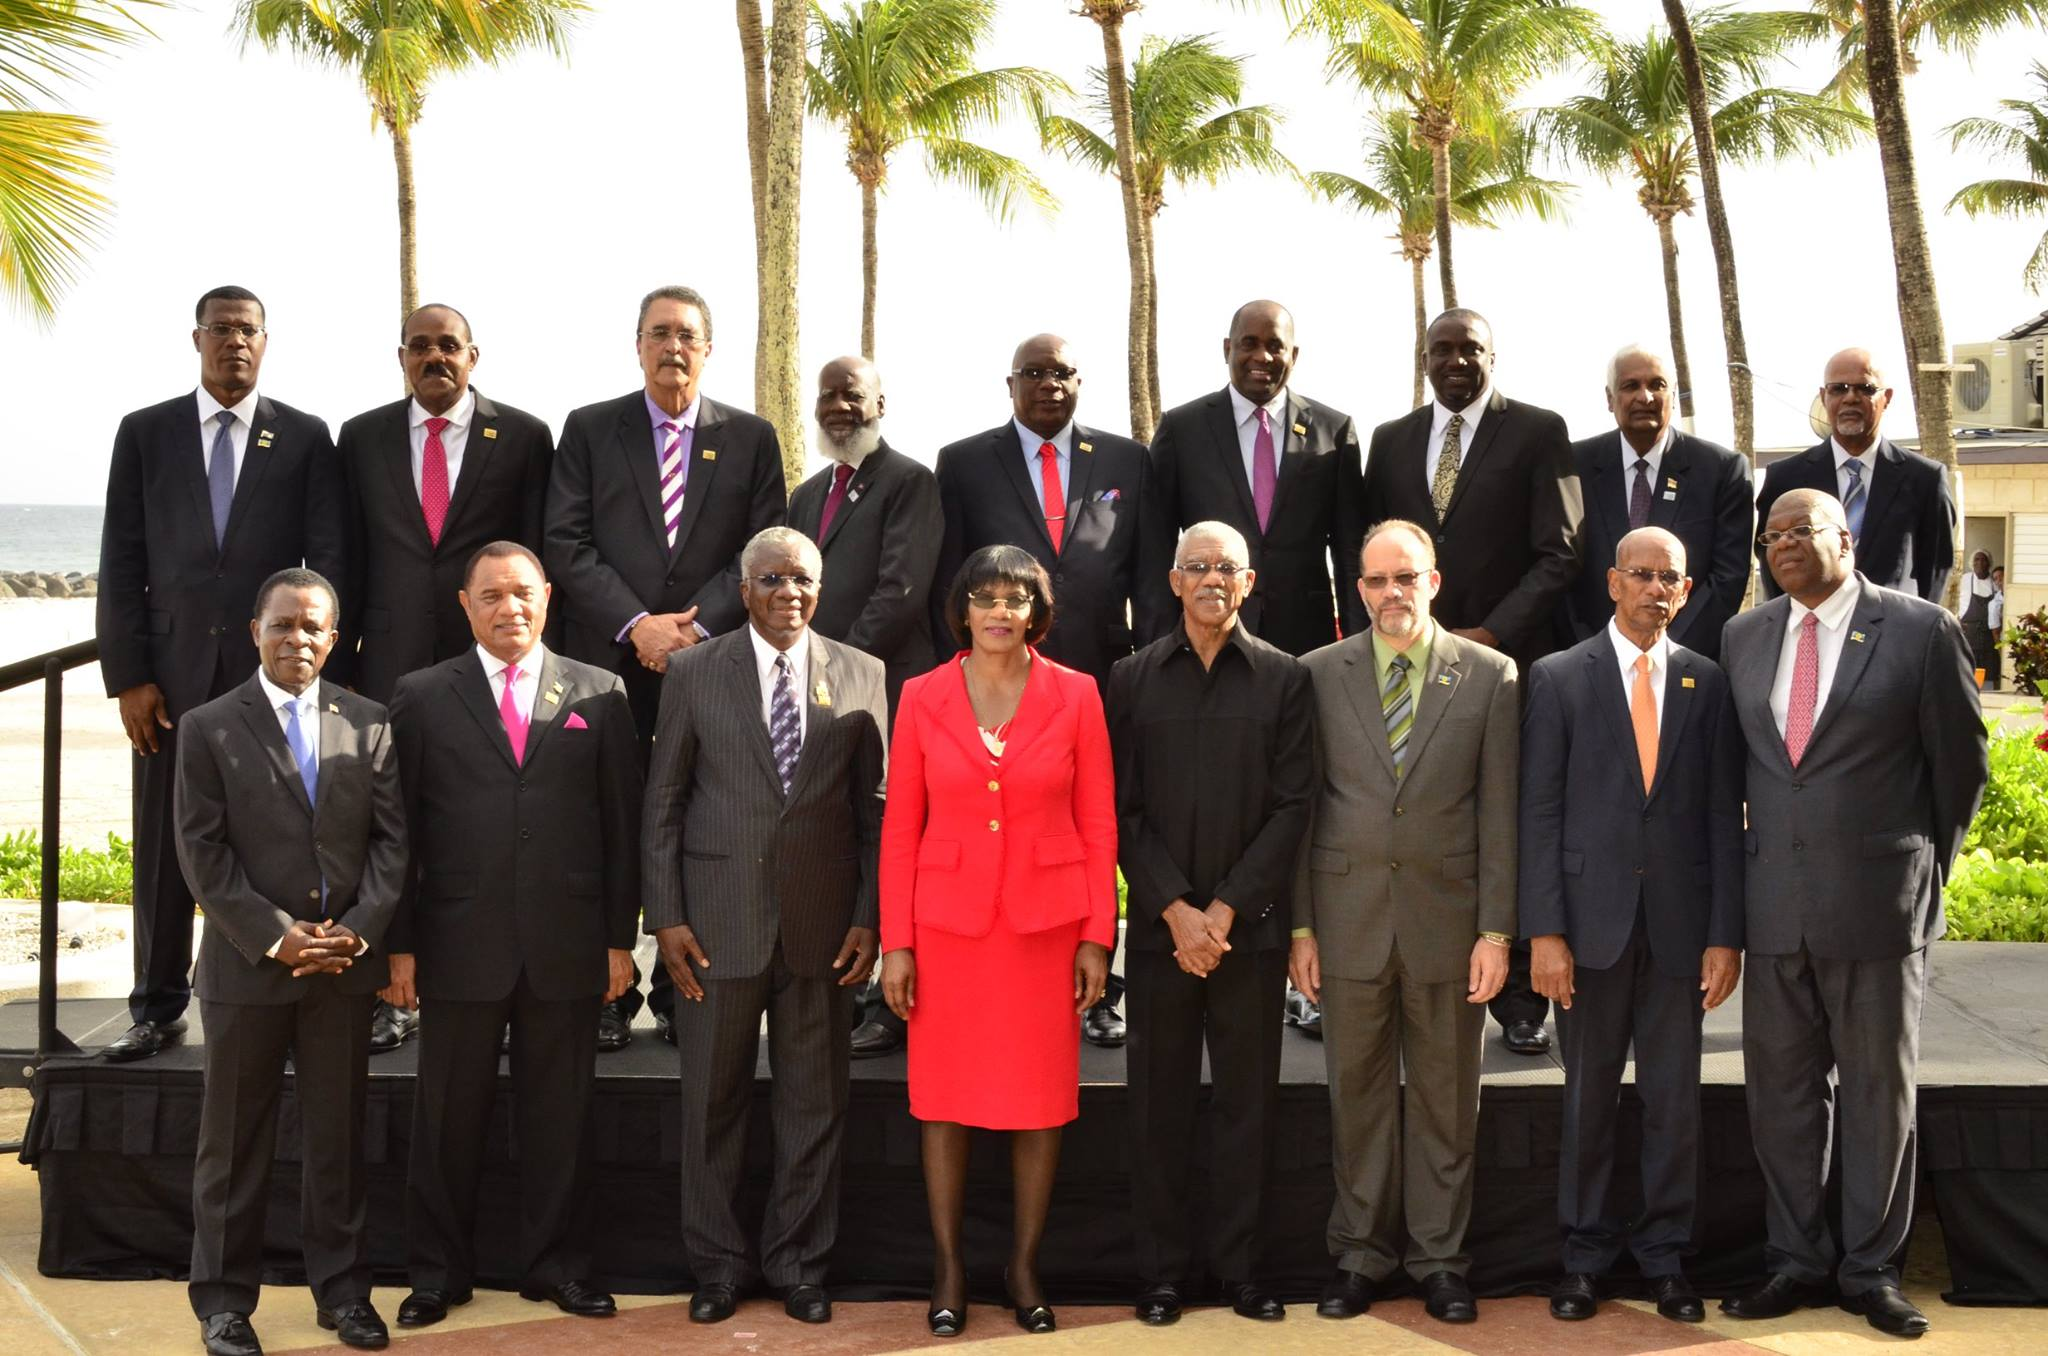 Official Photo: 36th Regular meeting of the Conference of Heads of Government